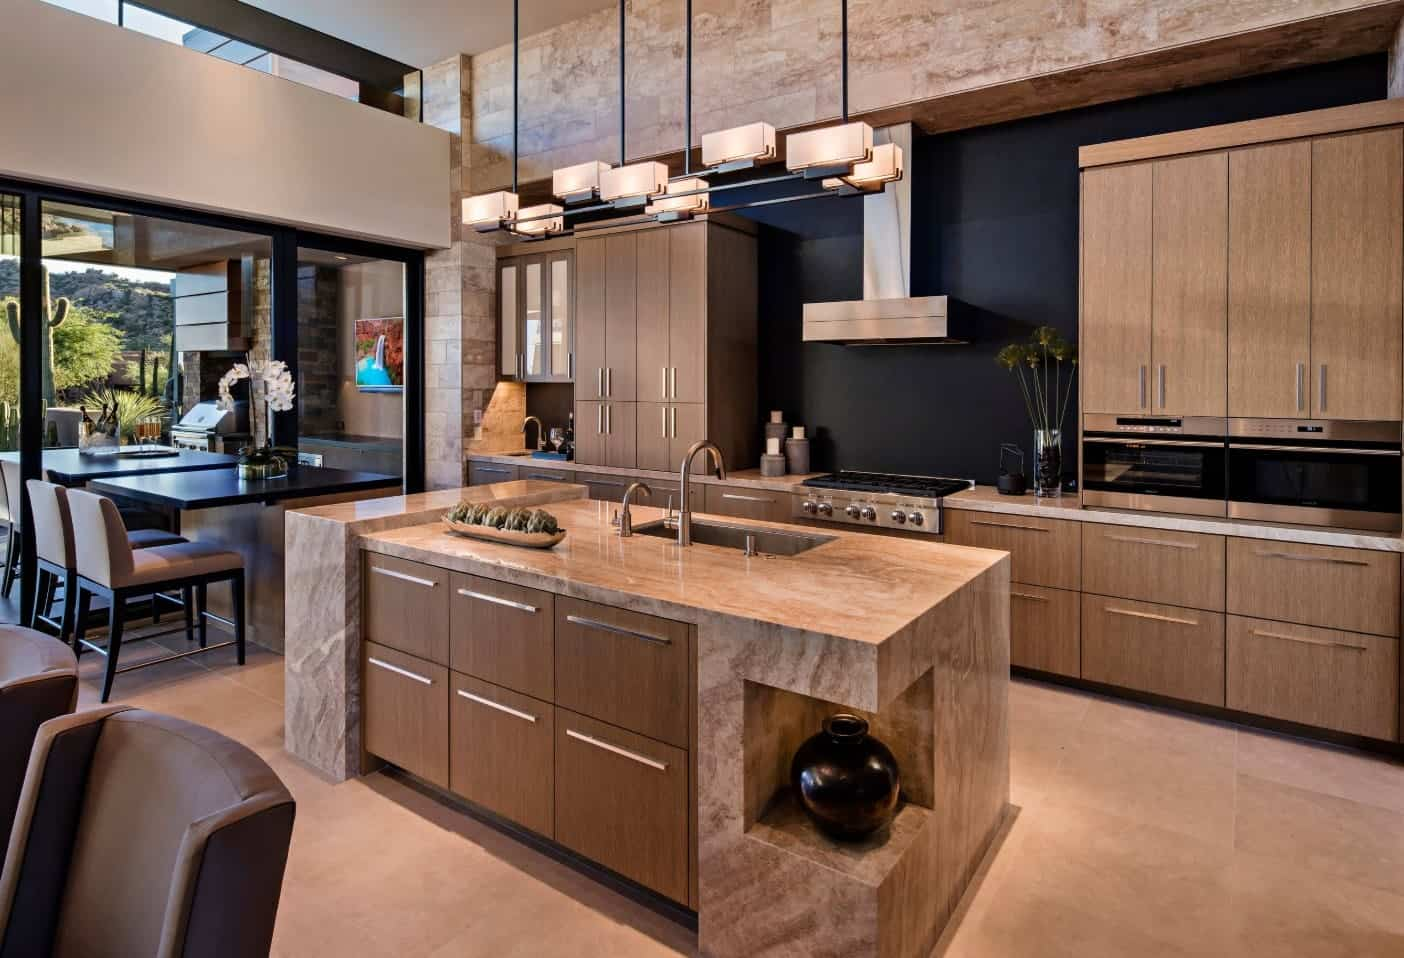 This kitchen boasts a marble breakfast island illuminated by an industrial chandelier. It includes a stainless steel vent hood fixed to the black wall.